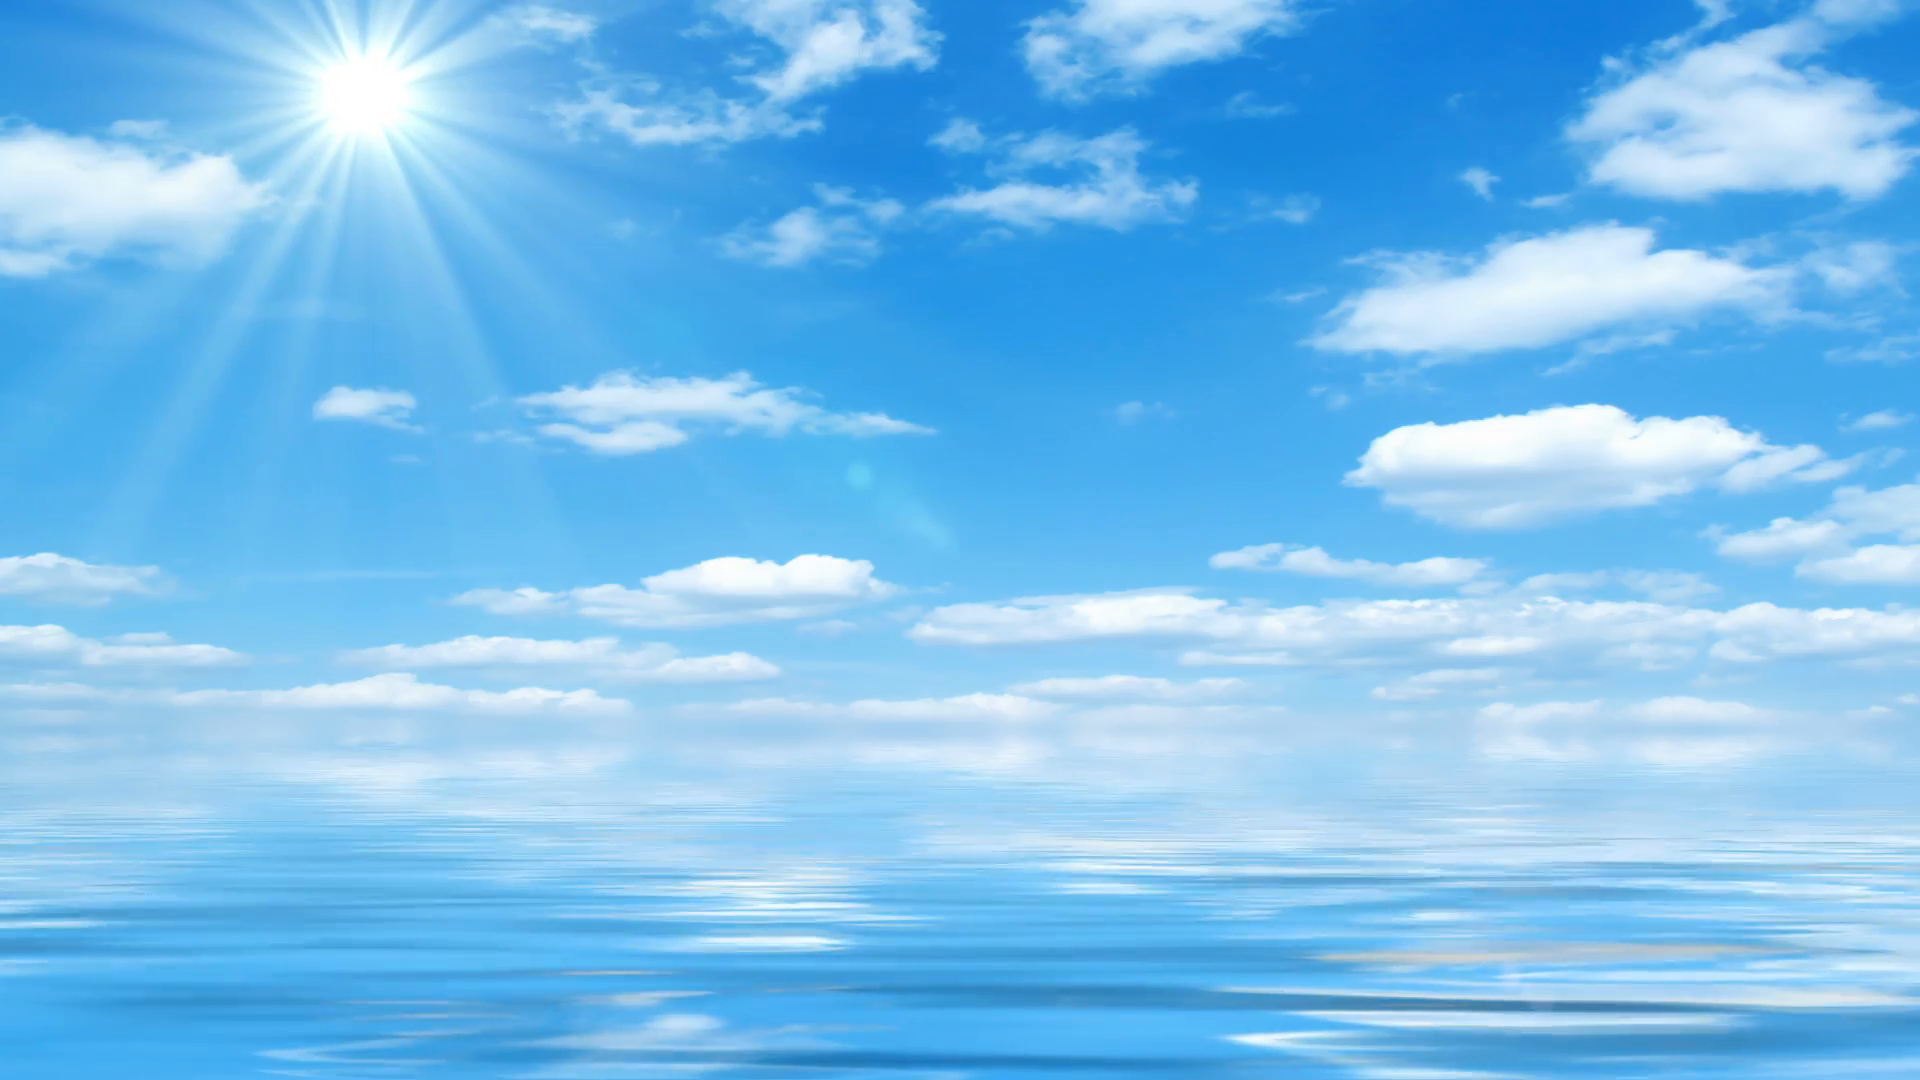 Beautiful Sea On Sunny Day With Blue Sky Reflecting In Water - Beautiful  sea horizon, sunshine, blue sky with fluffy clouds and water reflection. - Sunny Sky PNG